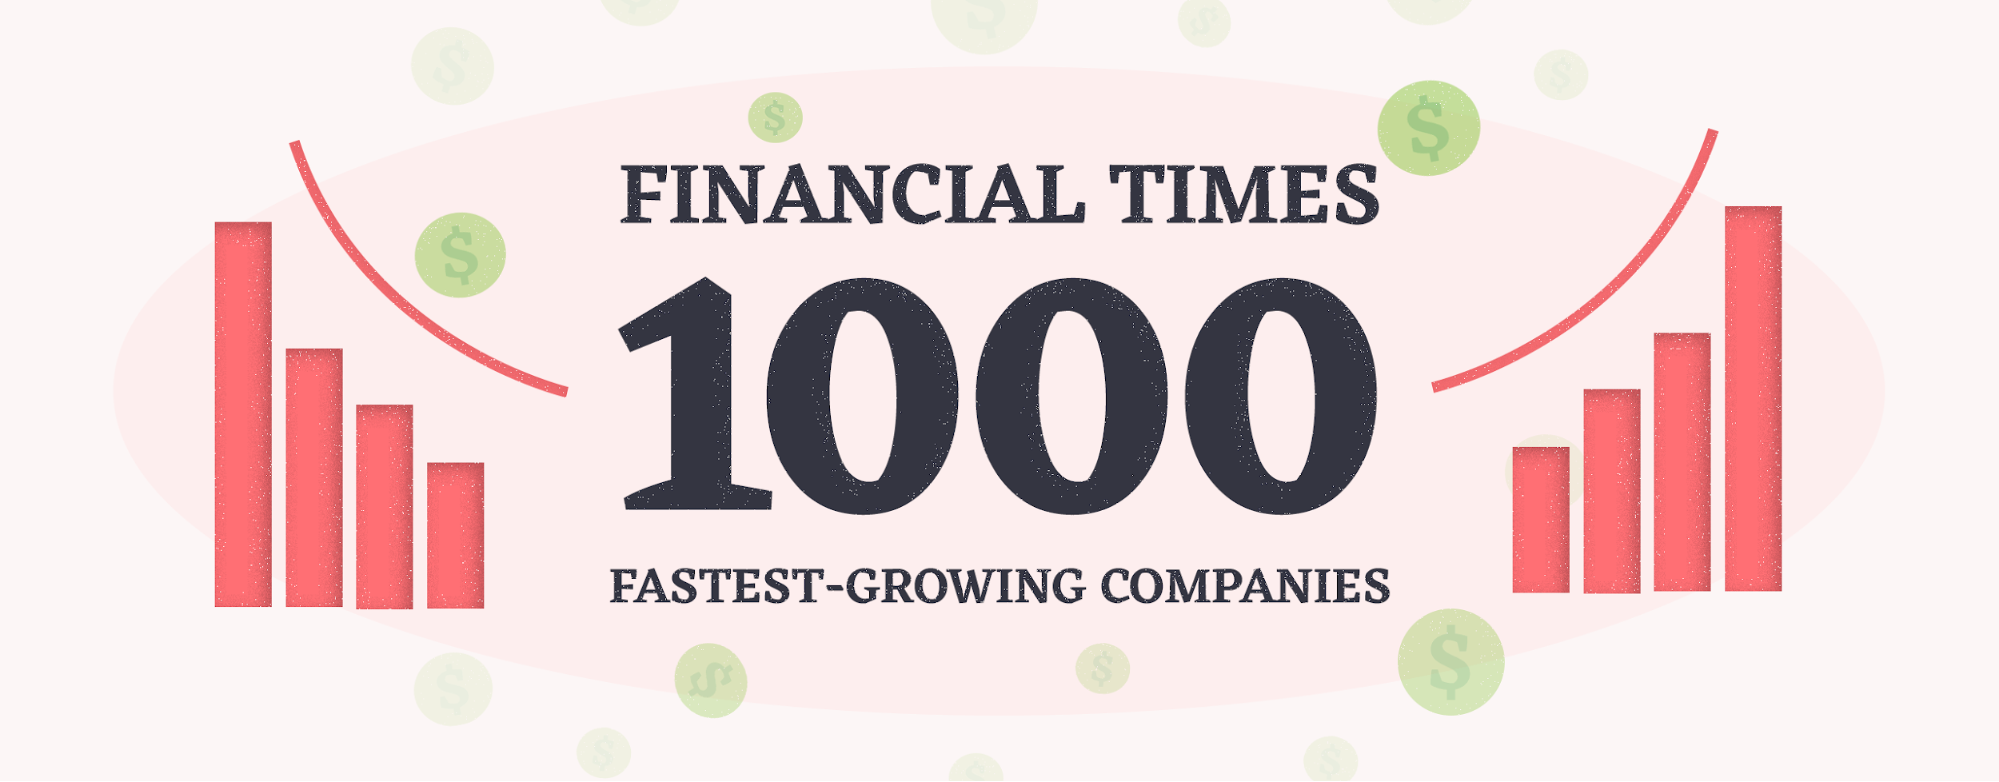 Monterail in Financial Times 1000 rank